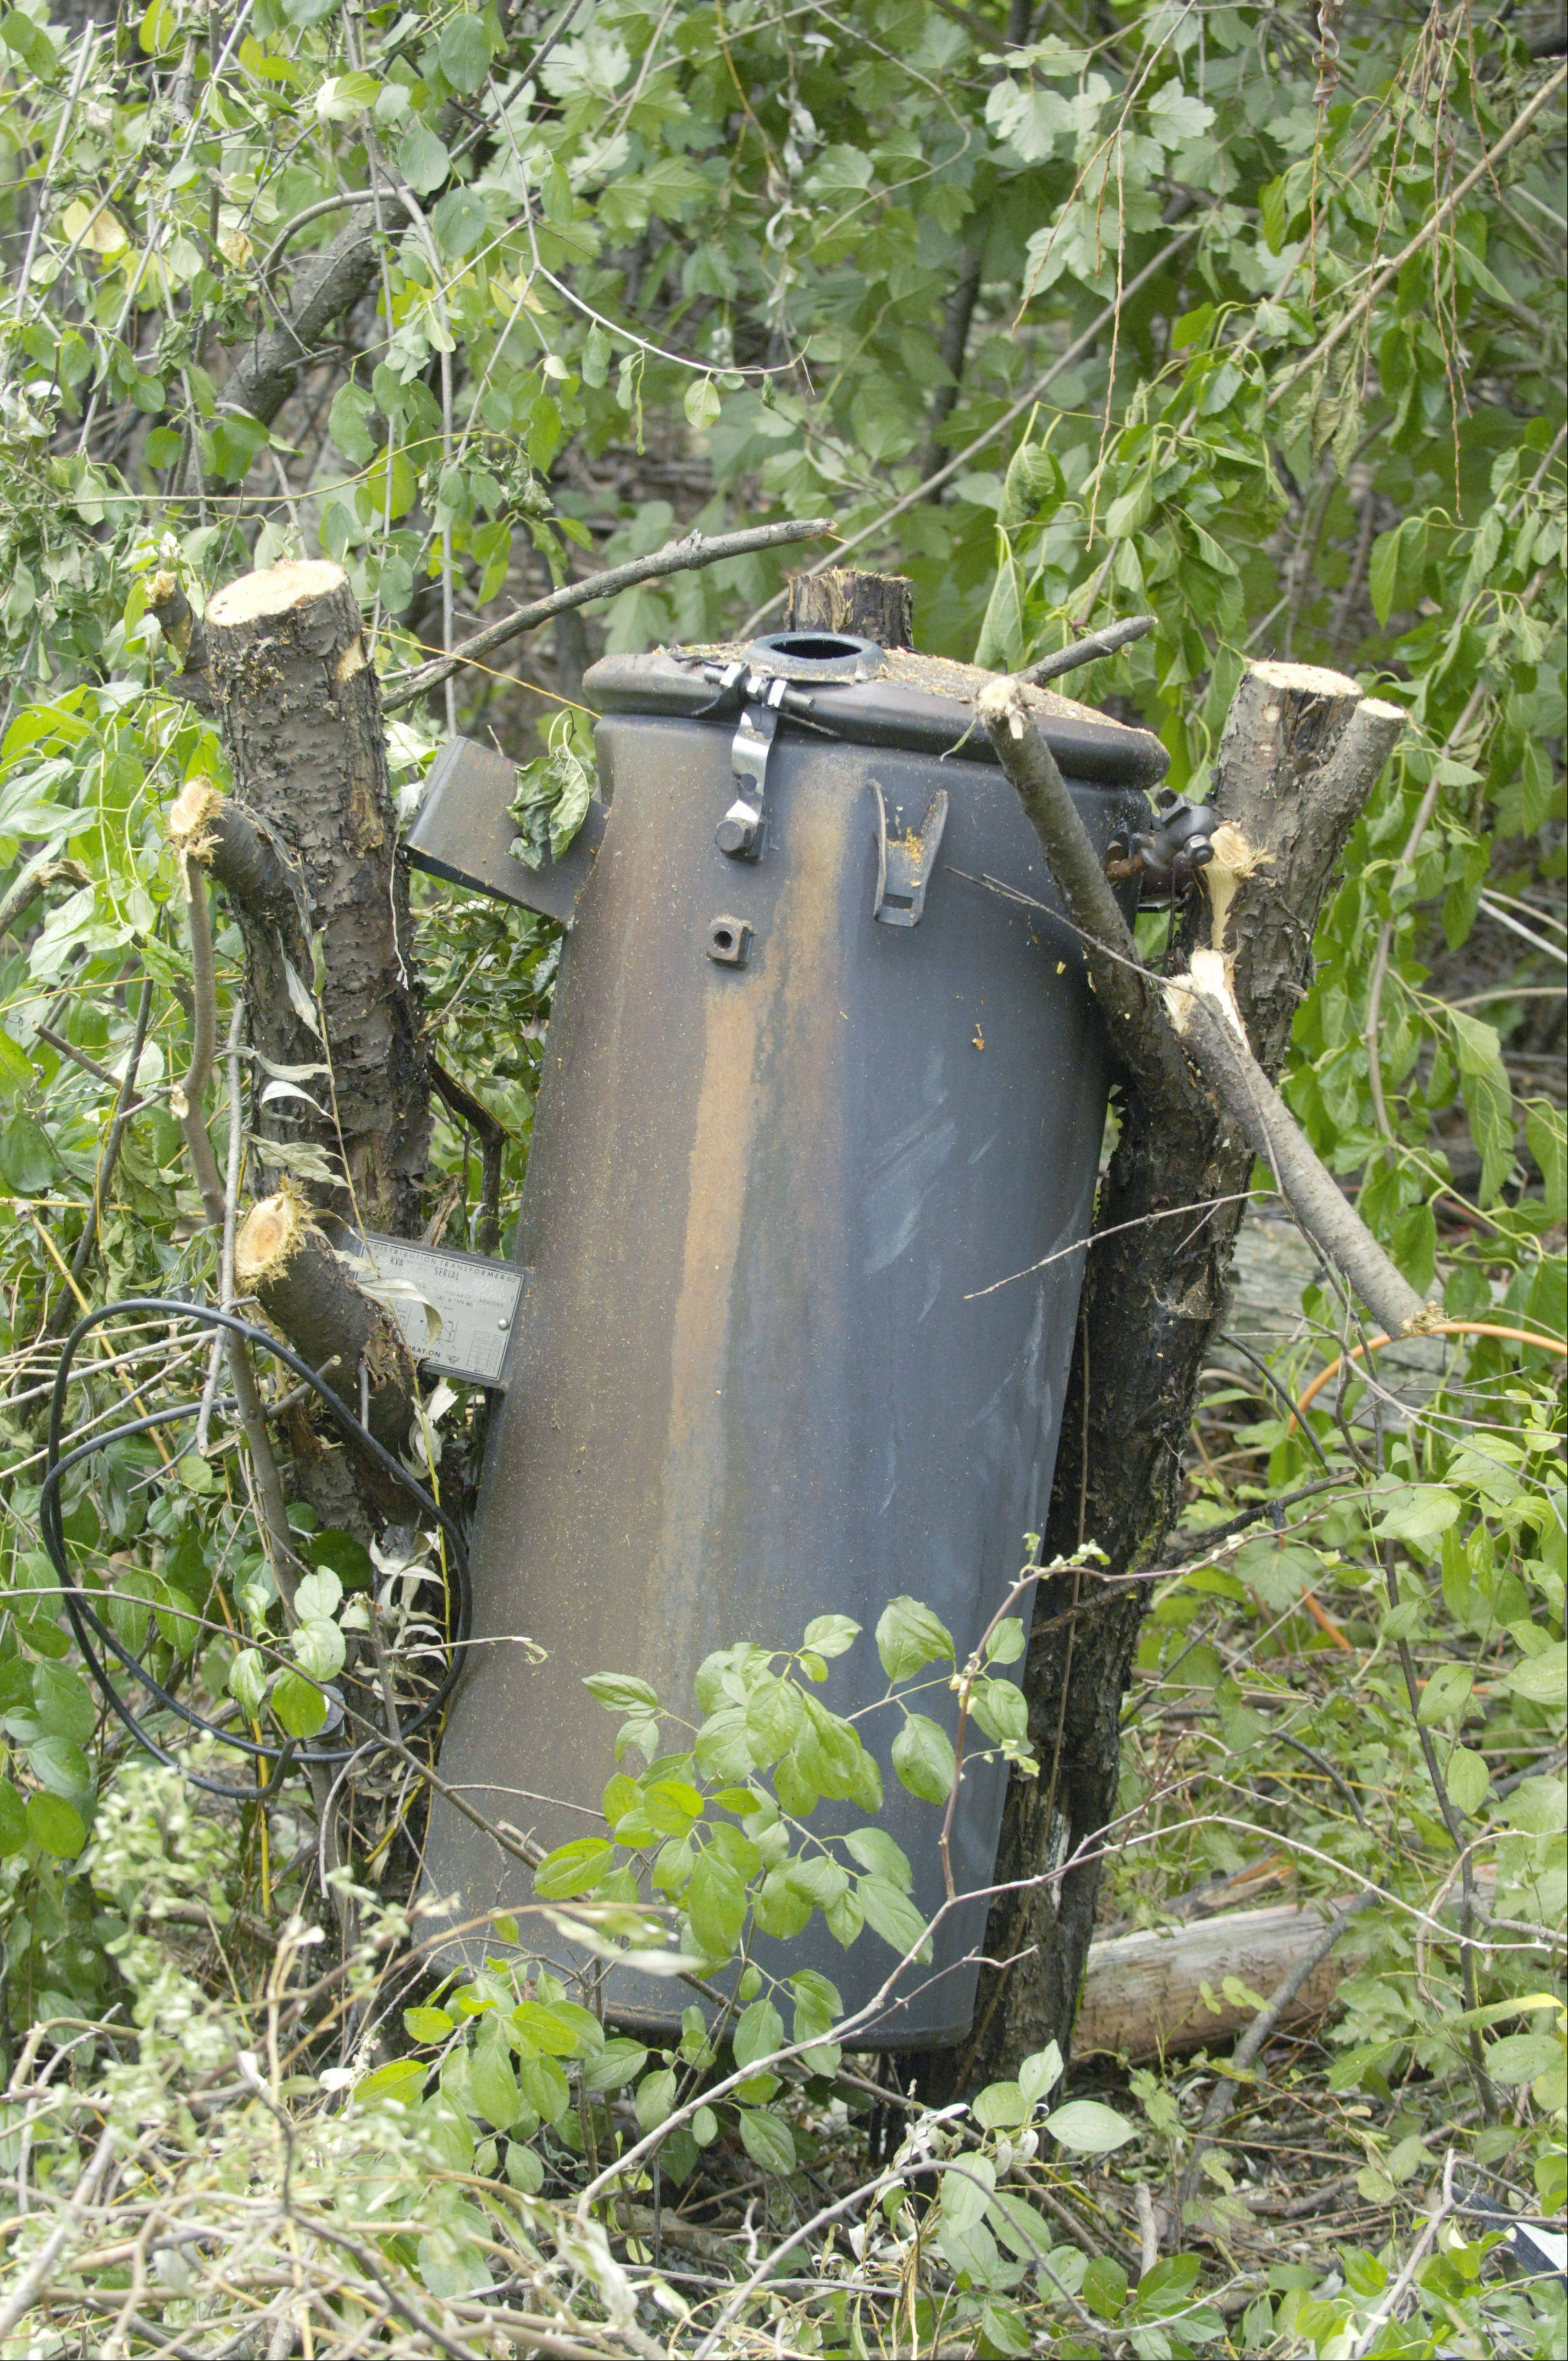 A blackened transformer, which was replaced Saturday, rests on the ground near Barrington.